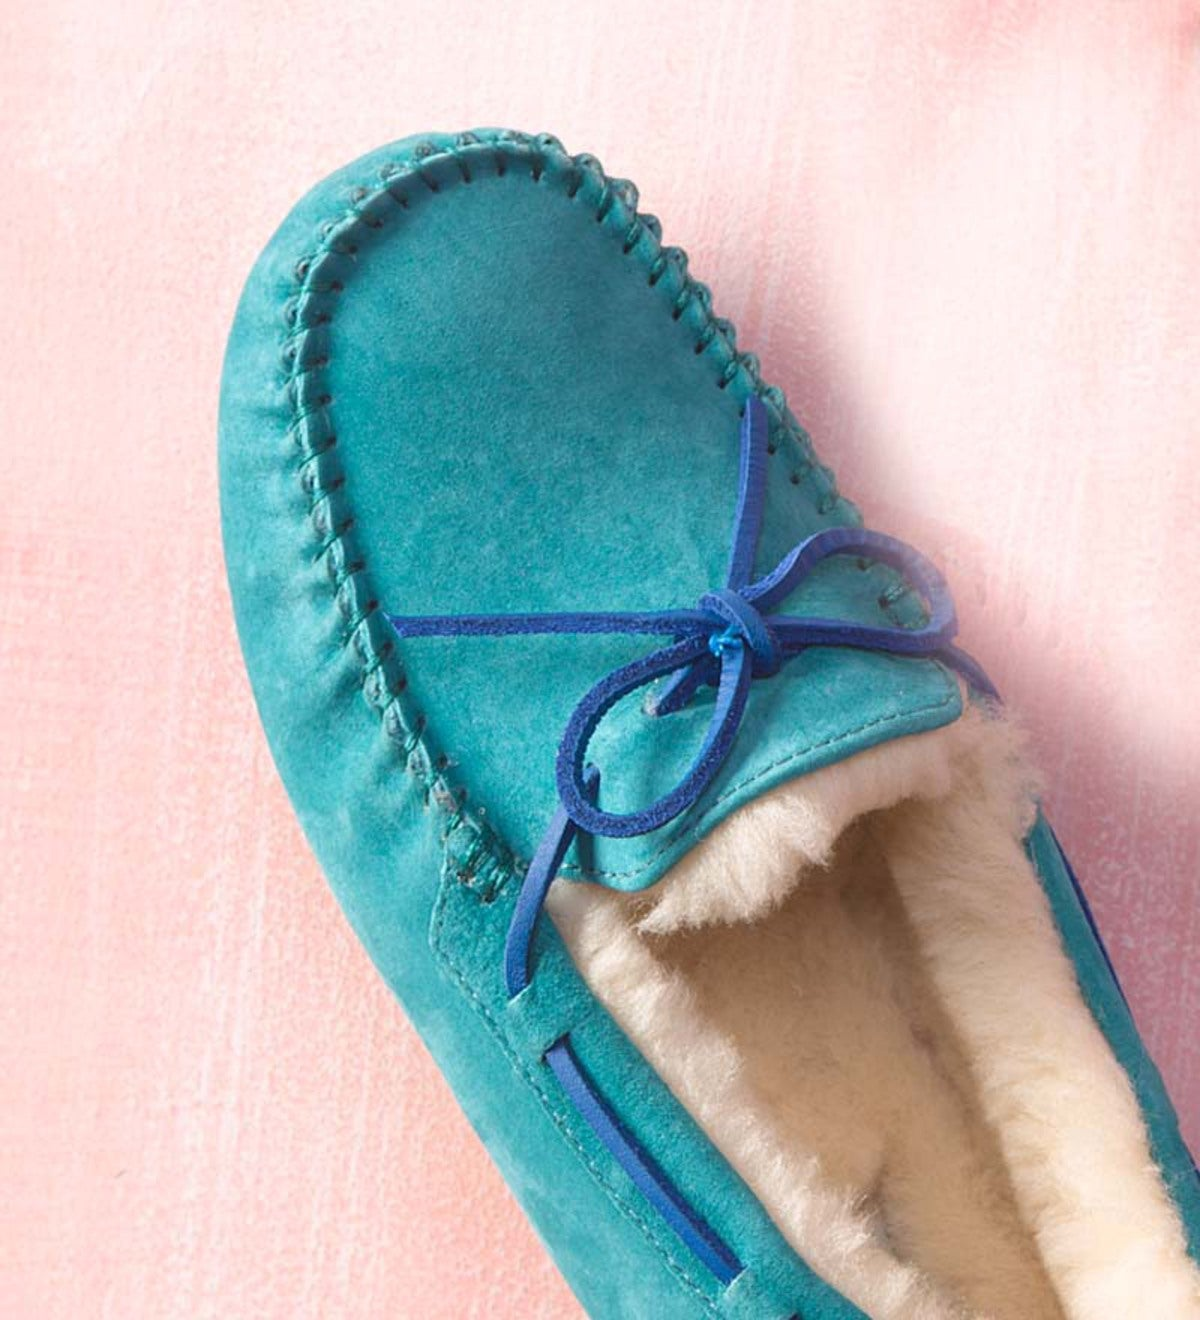 UGG Australia Womens Dakota Moccasin Slippers - Marlin - Size 10